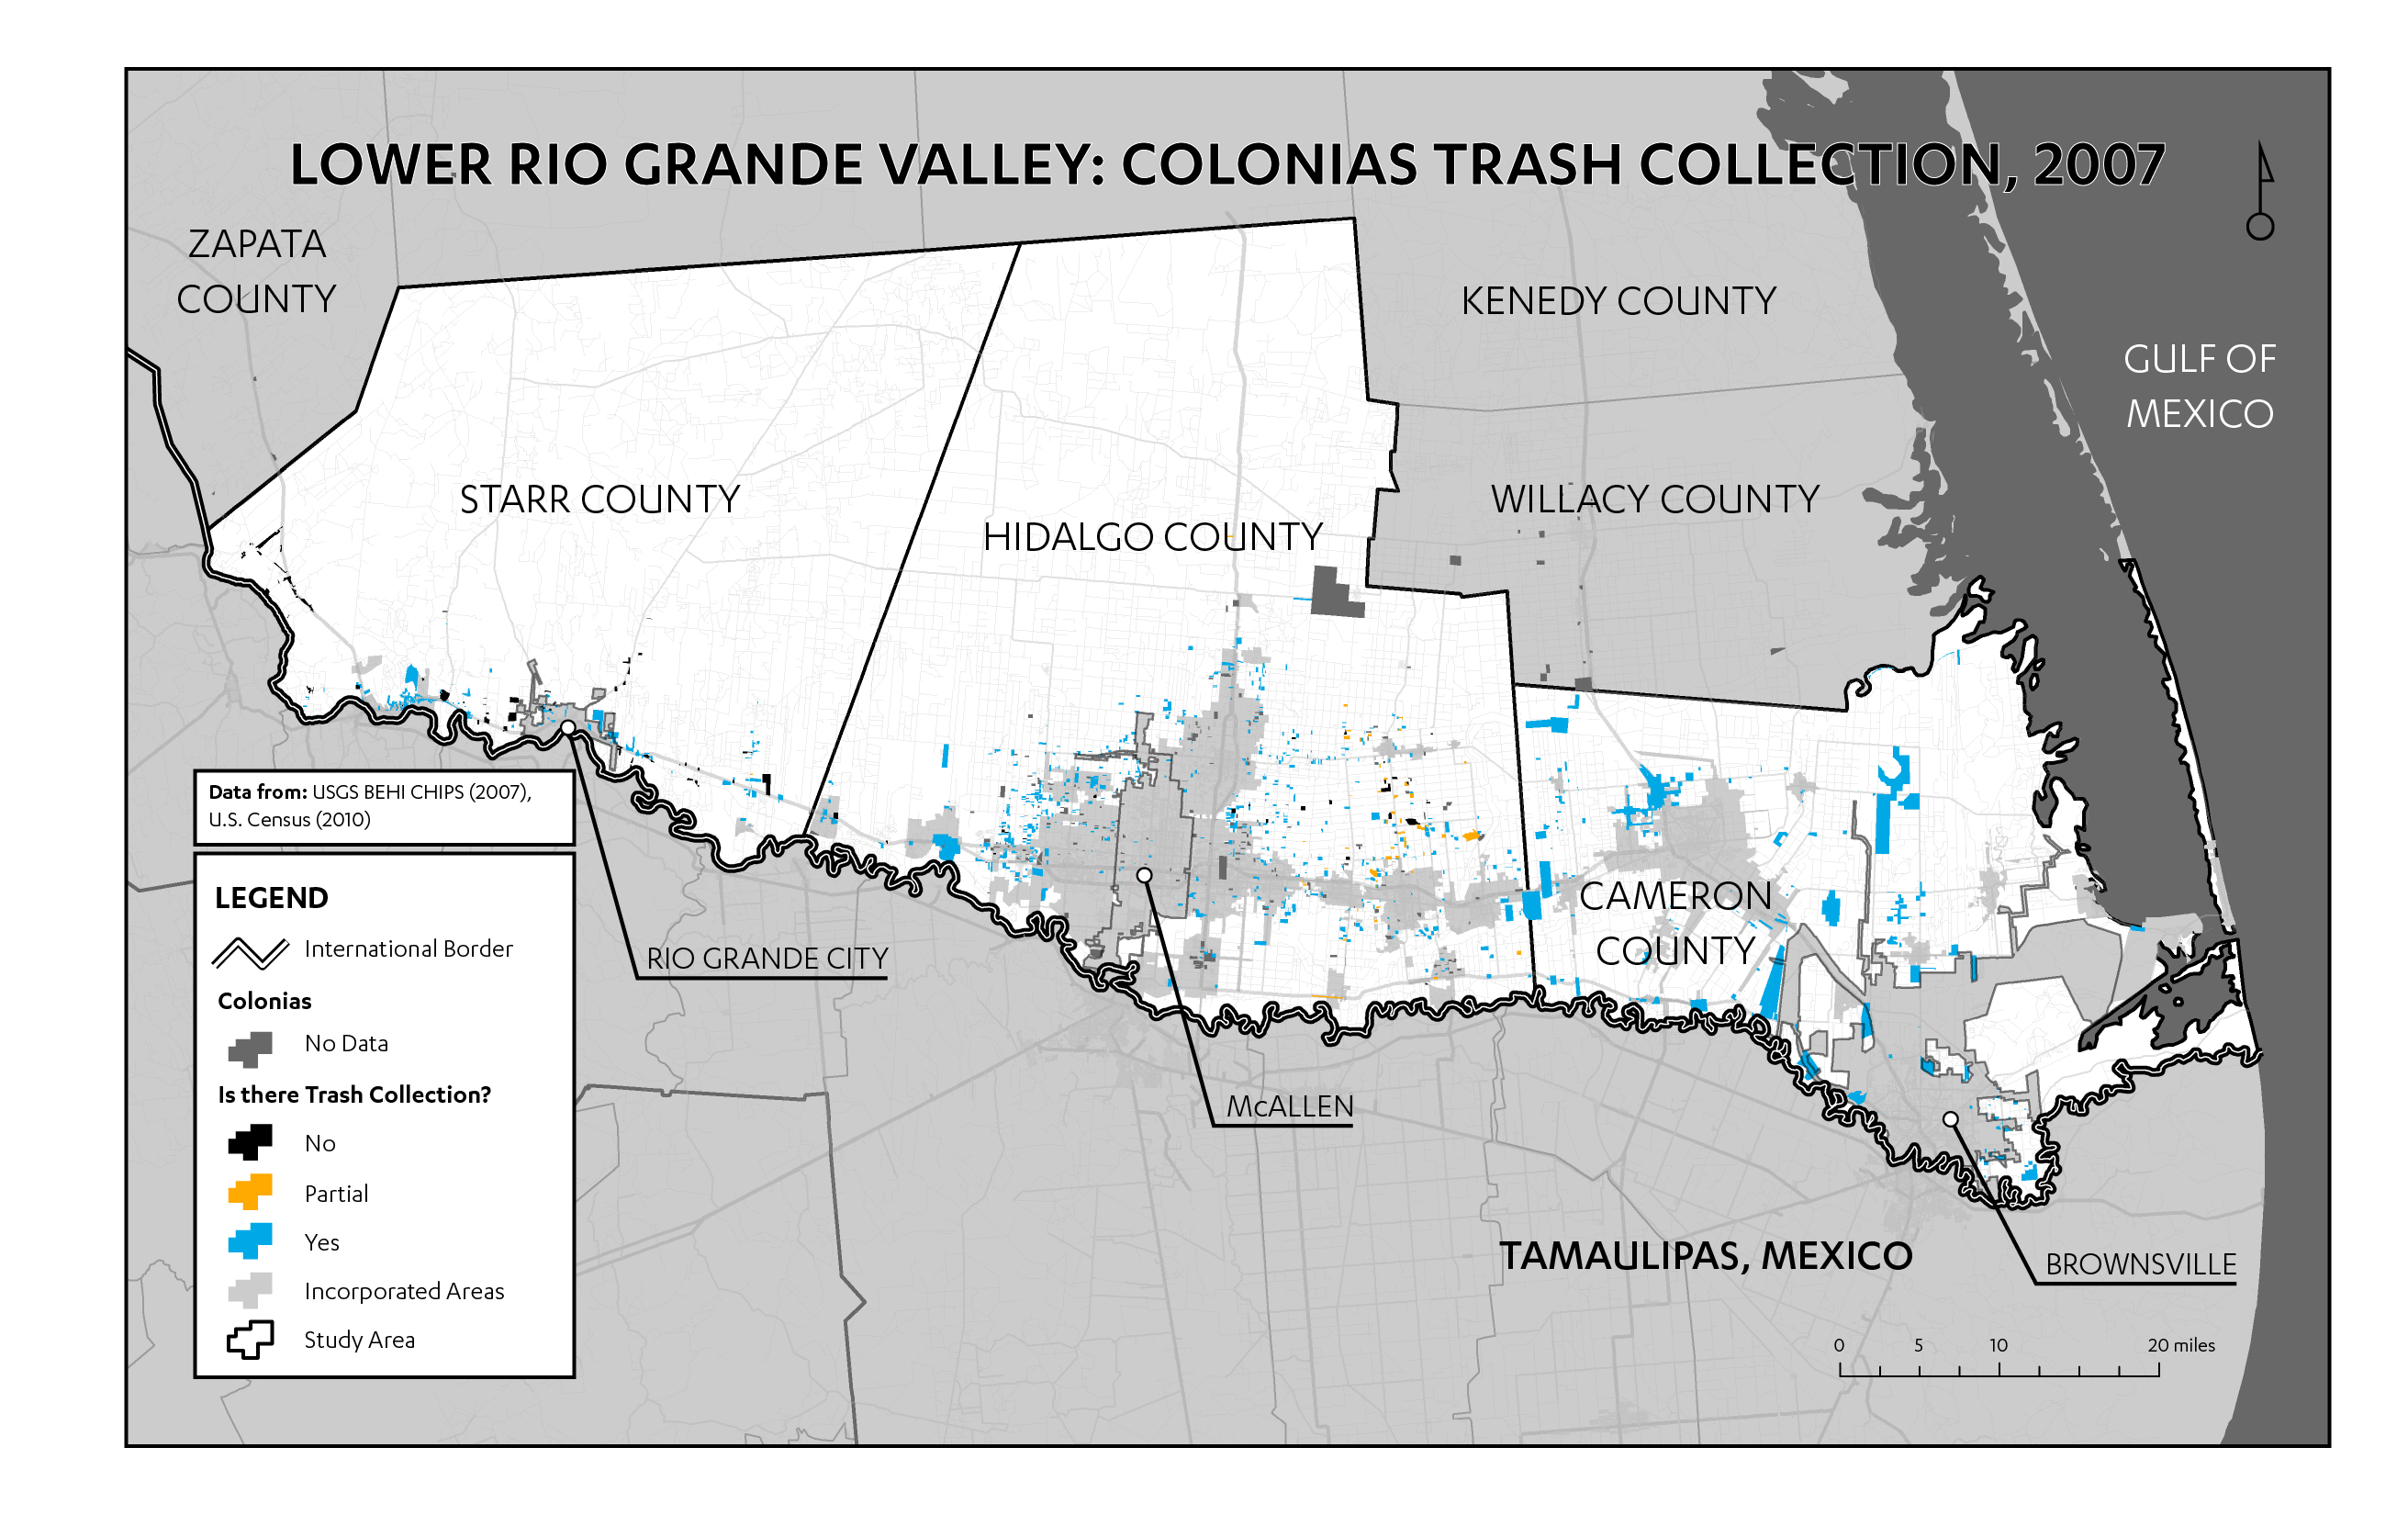 Figure 7: Map of trash collection access in Lower Rio Grande Valley colonias (data from CHIPS 2007). This map helps elucidate one of the clearest discrepancies between the CHIPS data and the experiences of those on the ground. According to this map, the majority of colonias appear to have adequate trash collection. However, the nonprofit leaders I interviewed reported that flooding and lack of trash collection (see Figure 6) are the largest issues facing colonias. This discrepancy may identify the issues facing omitted colonias in the CHIPS data, suggesting that these colonias may be the most at risk. If this is true, their omission positively biases the CHIPS data.